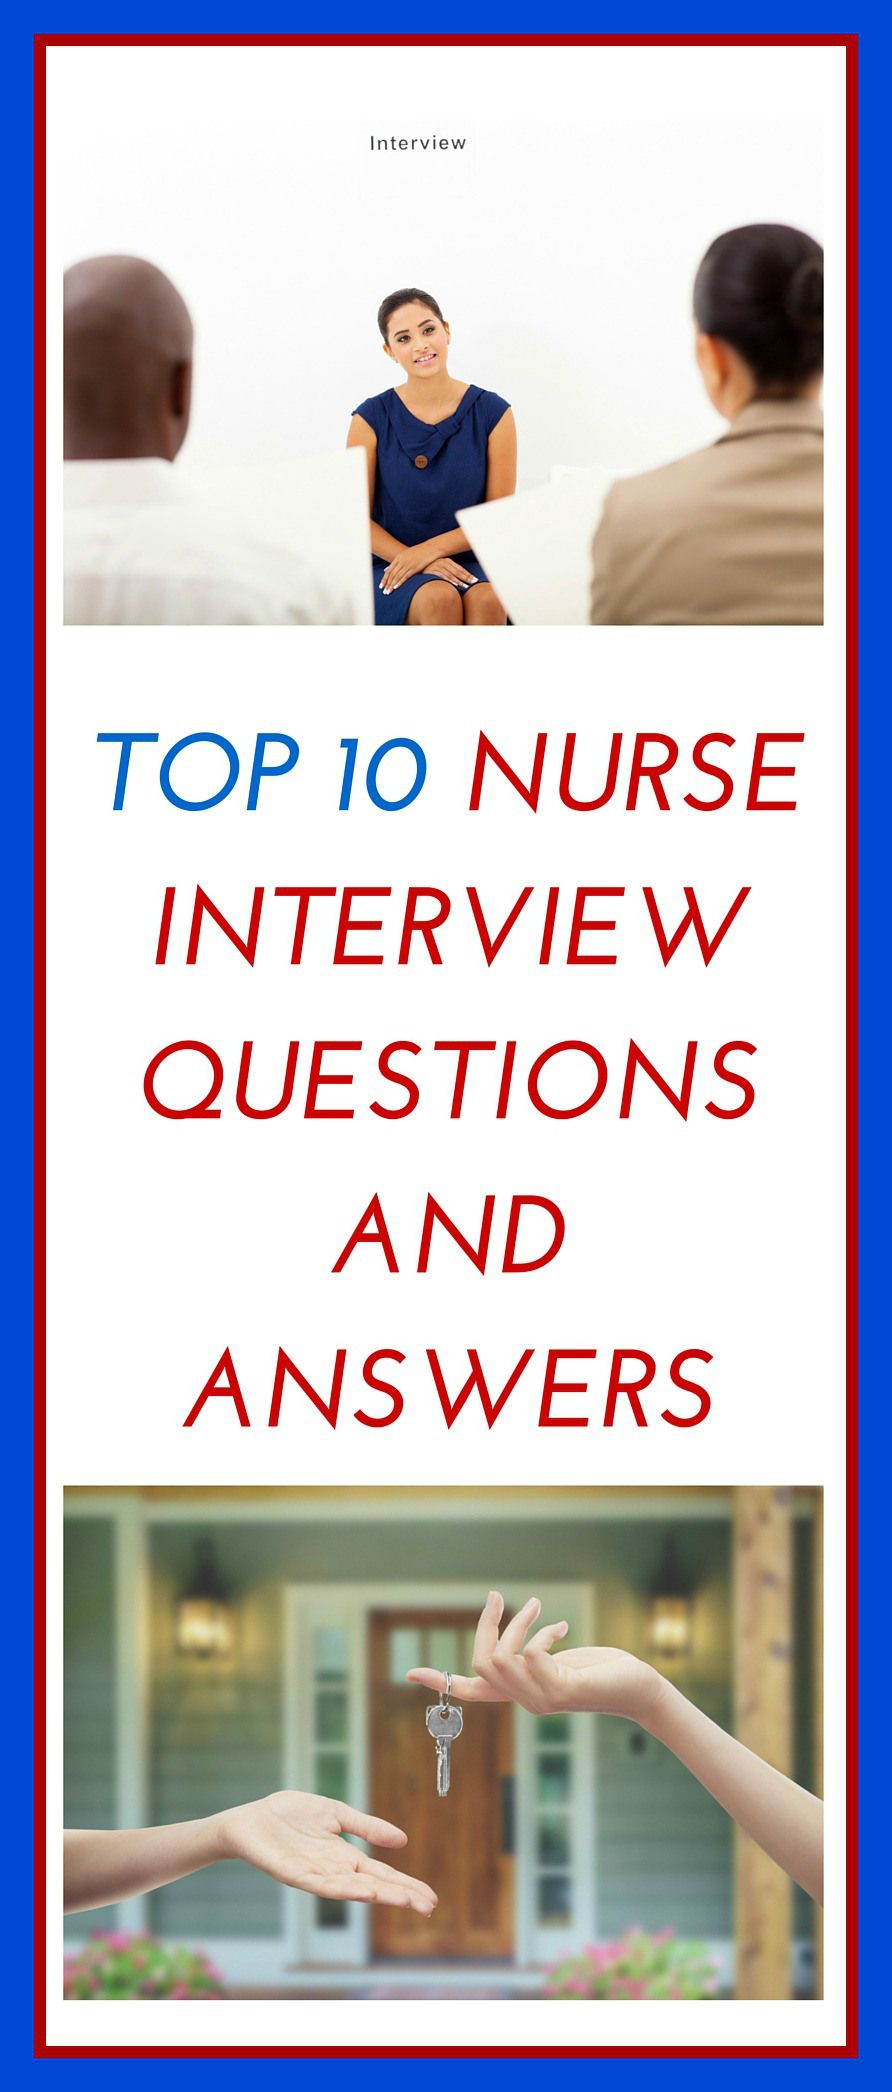 Top Nurse Interview Questions and Answers | Enfermería, Datos y Me ...